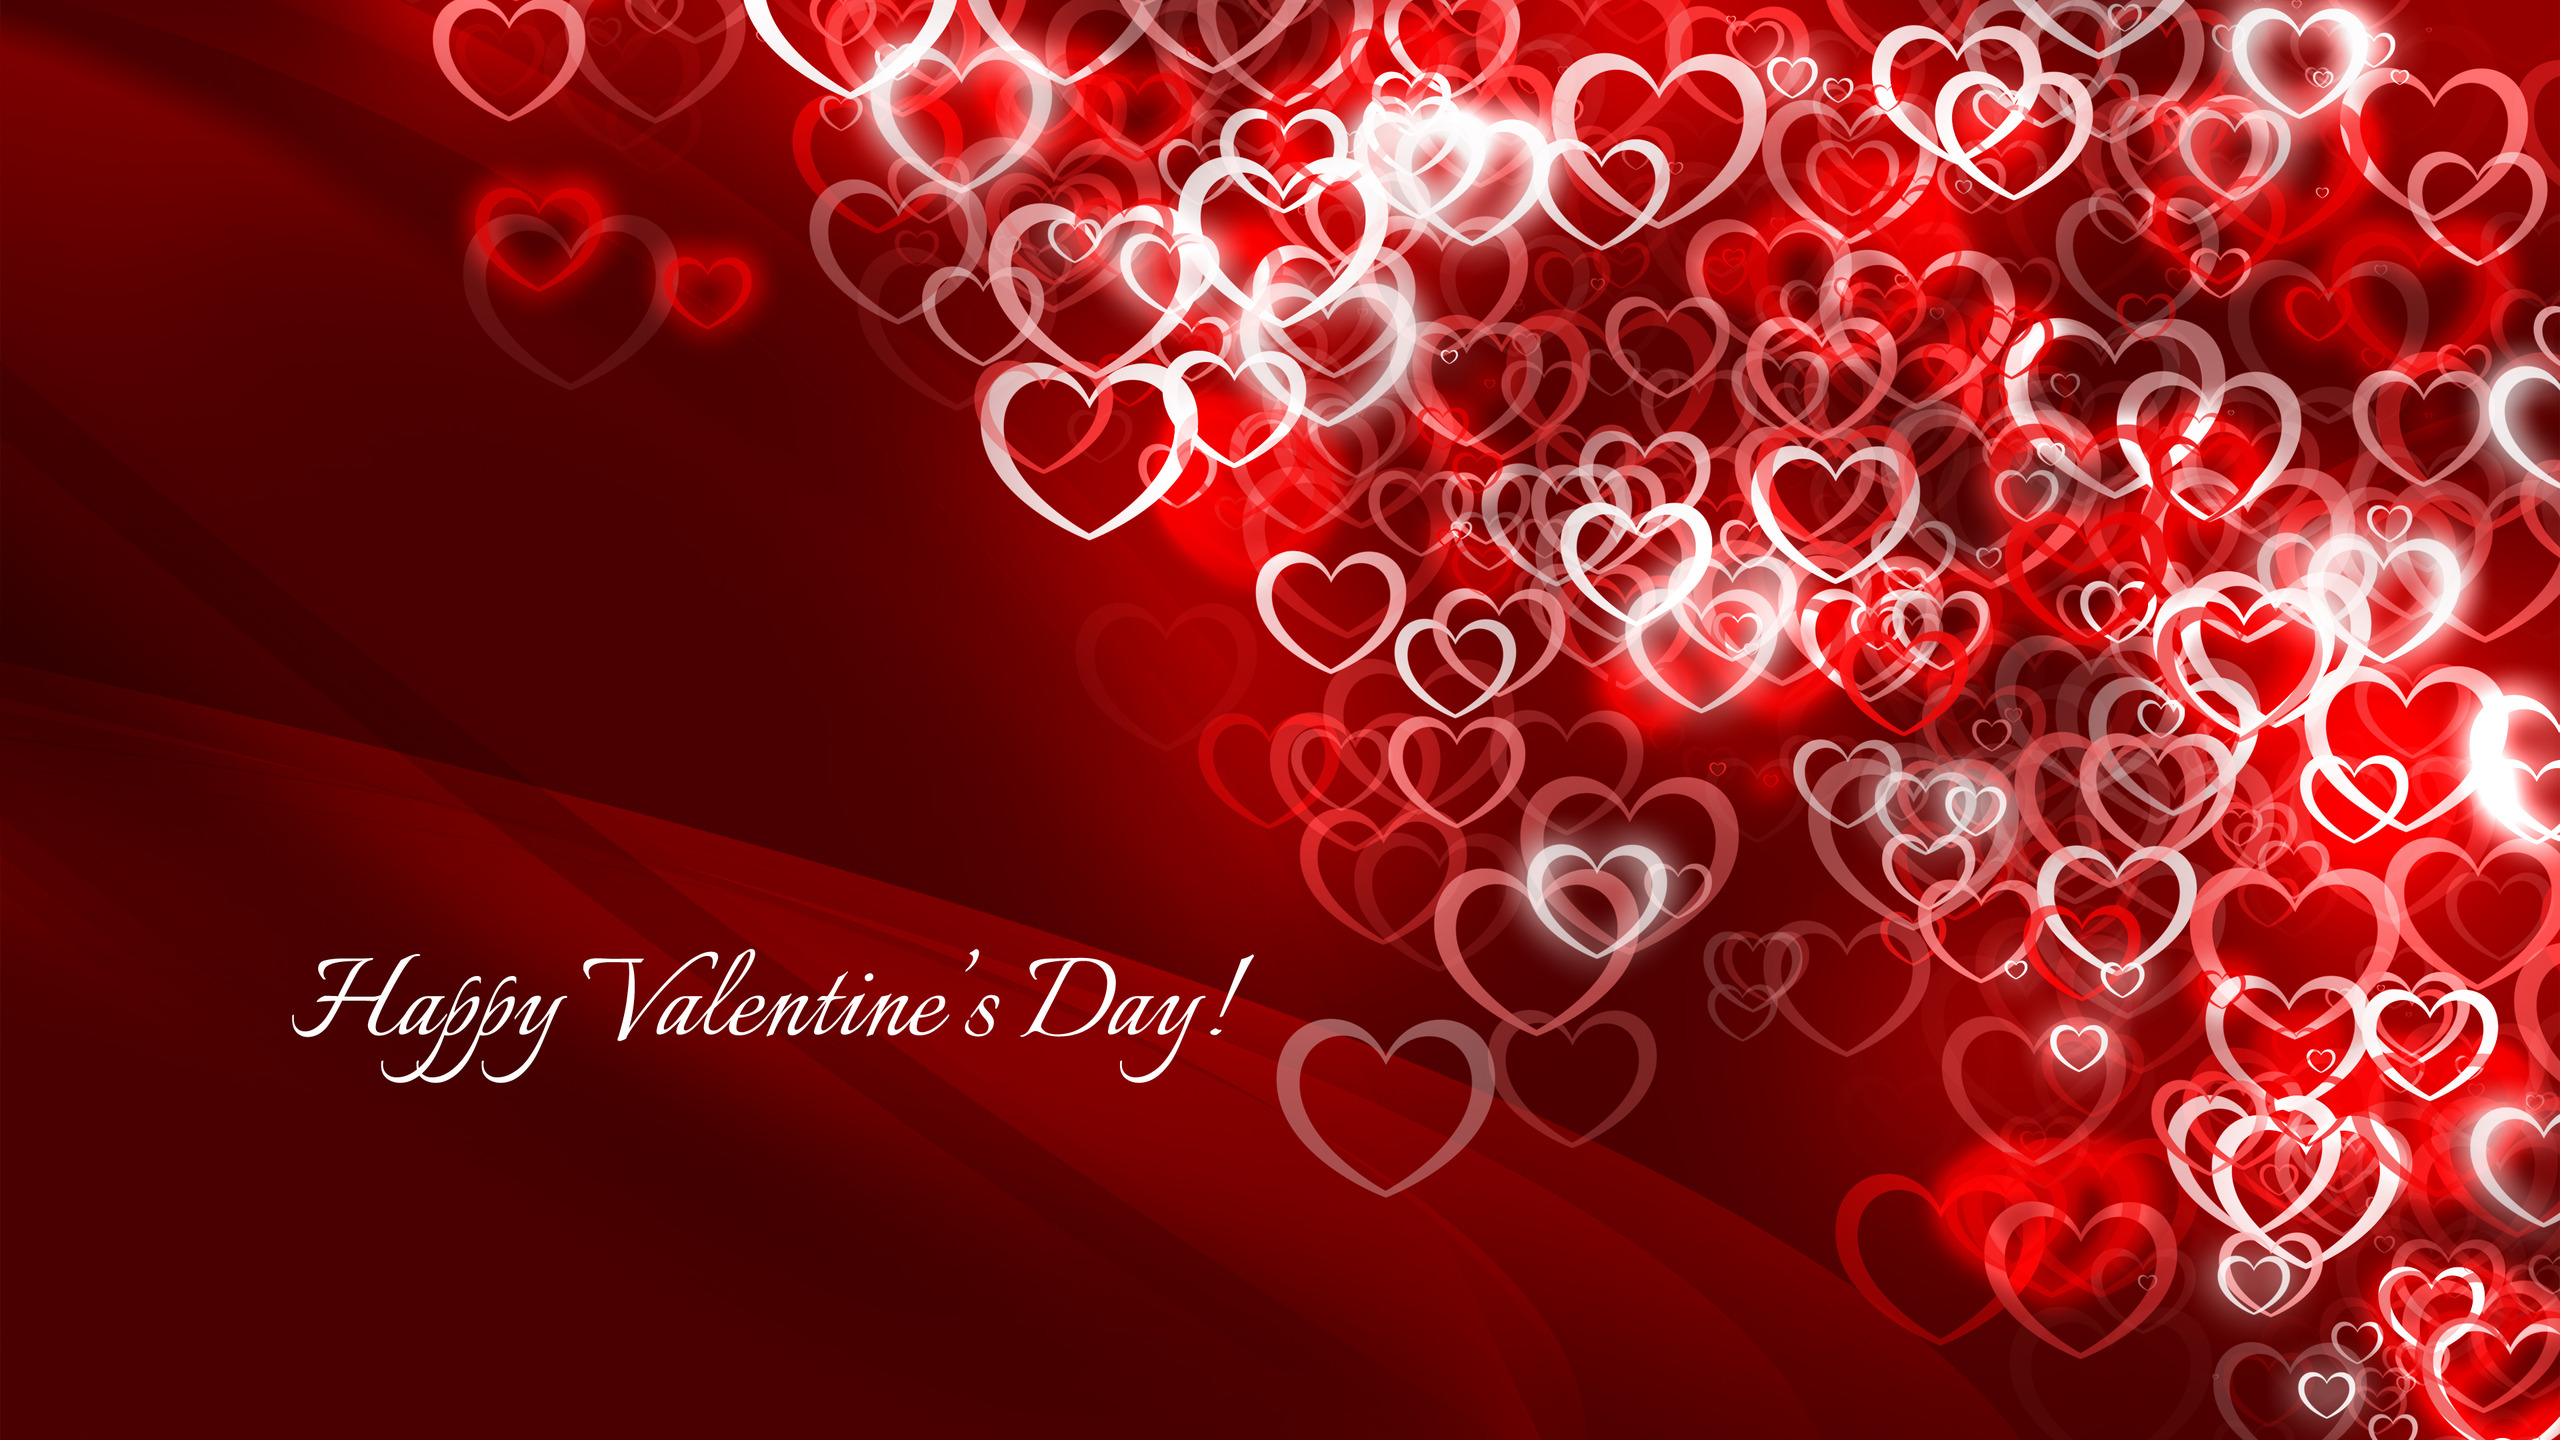 happy valentine's day card full hd wallpaper and background image